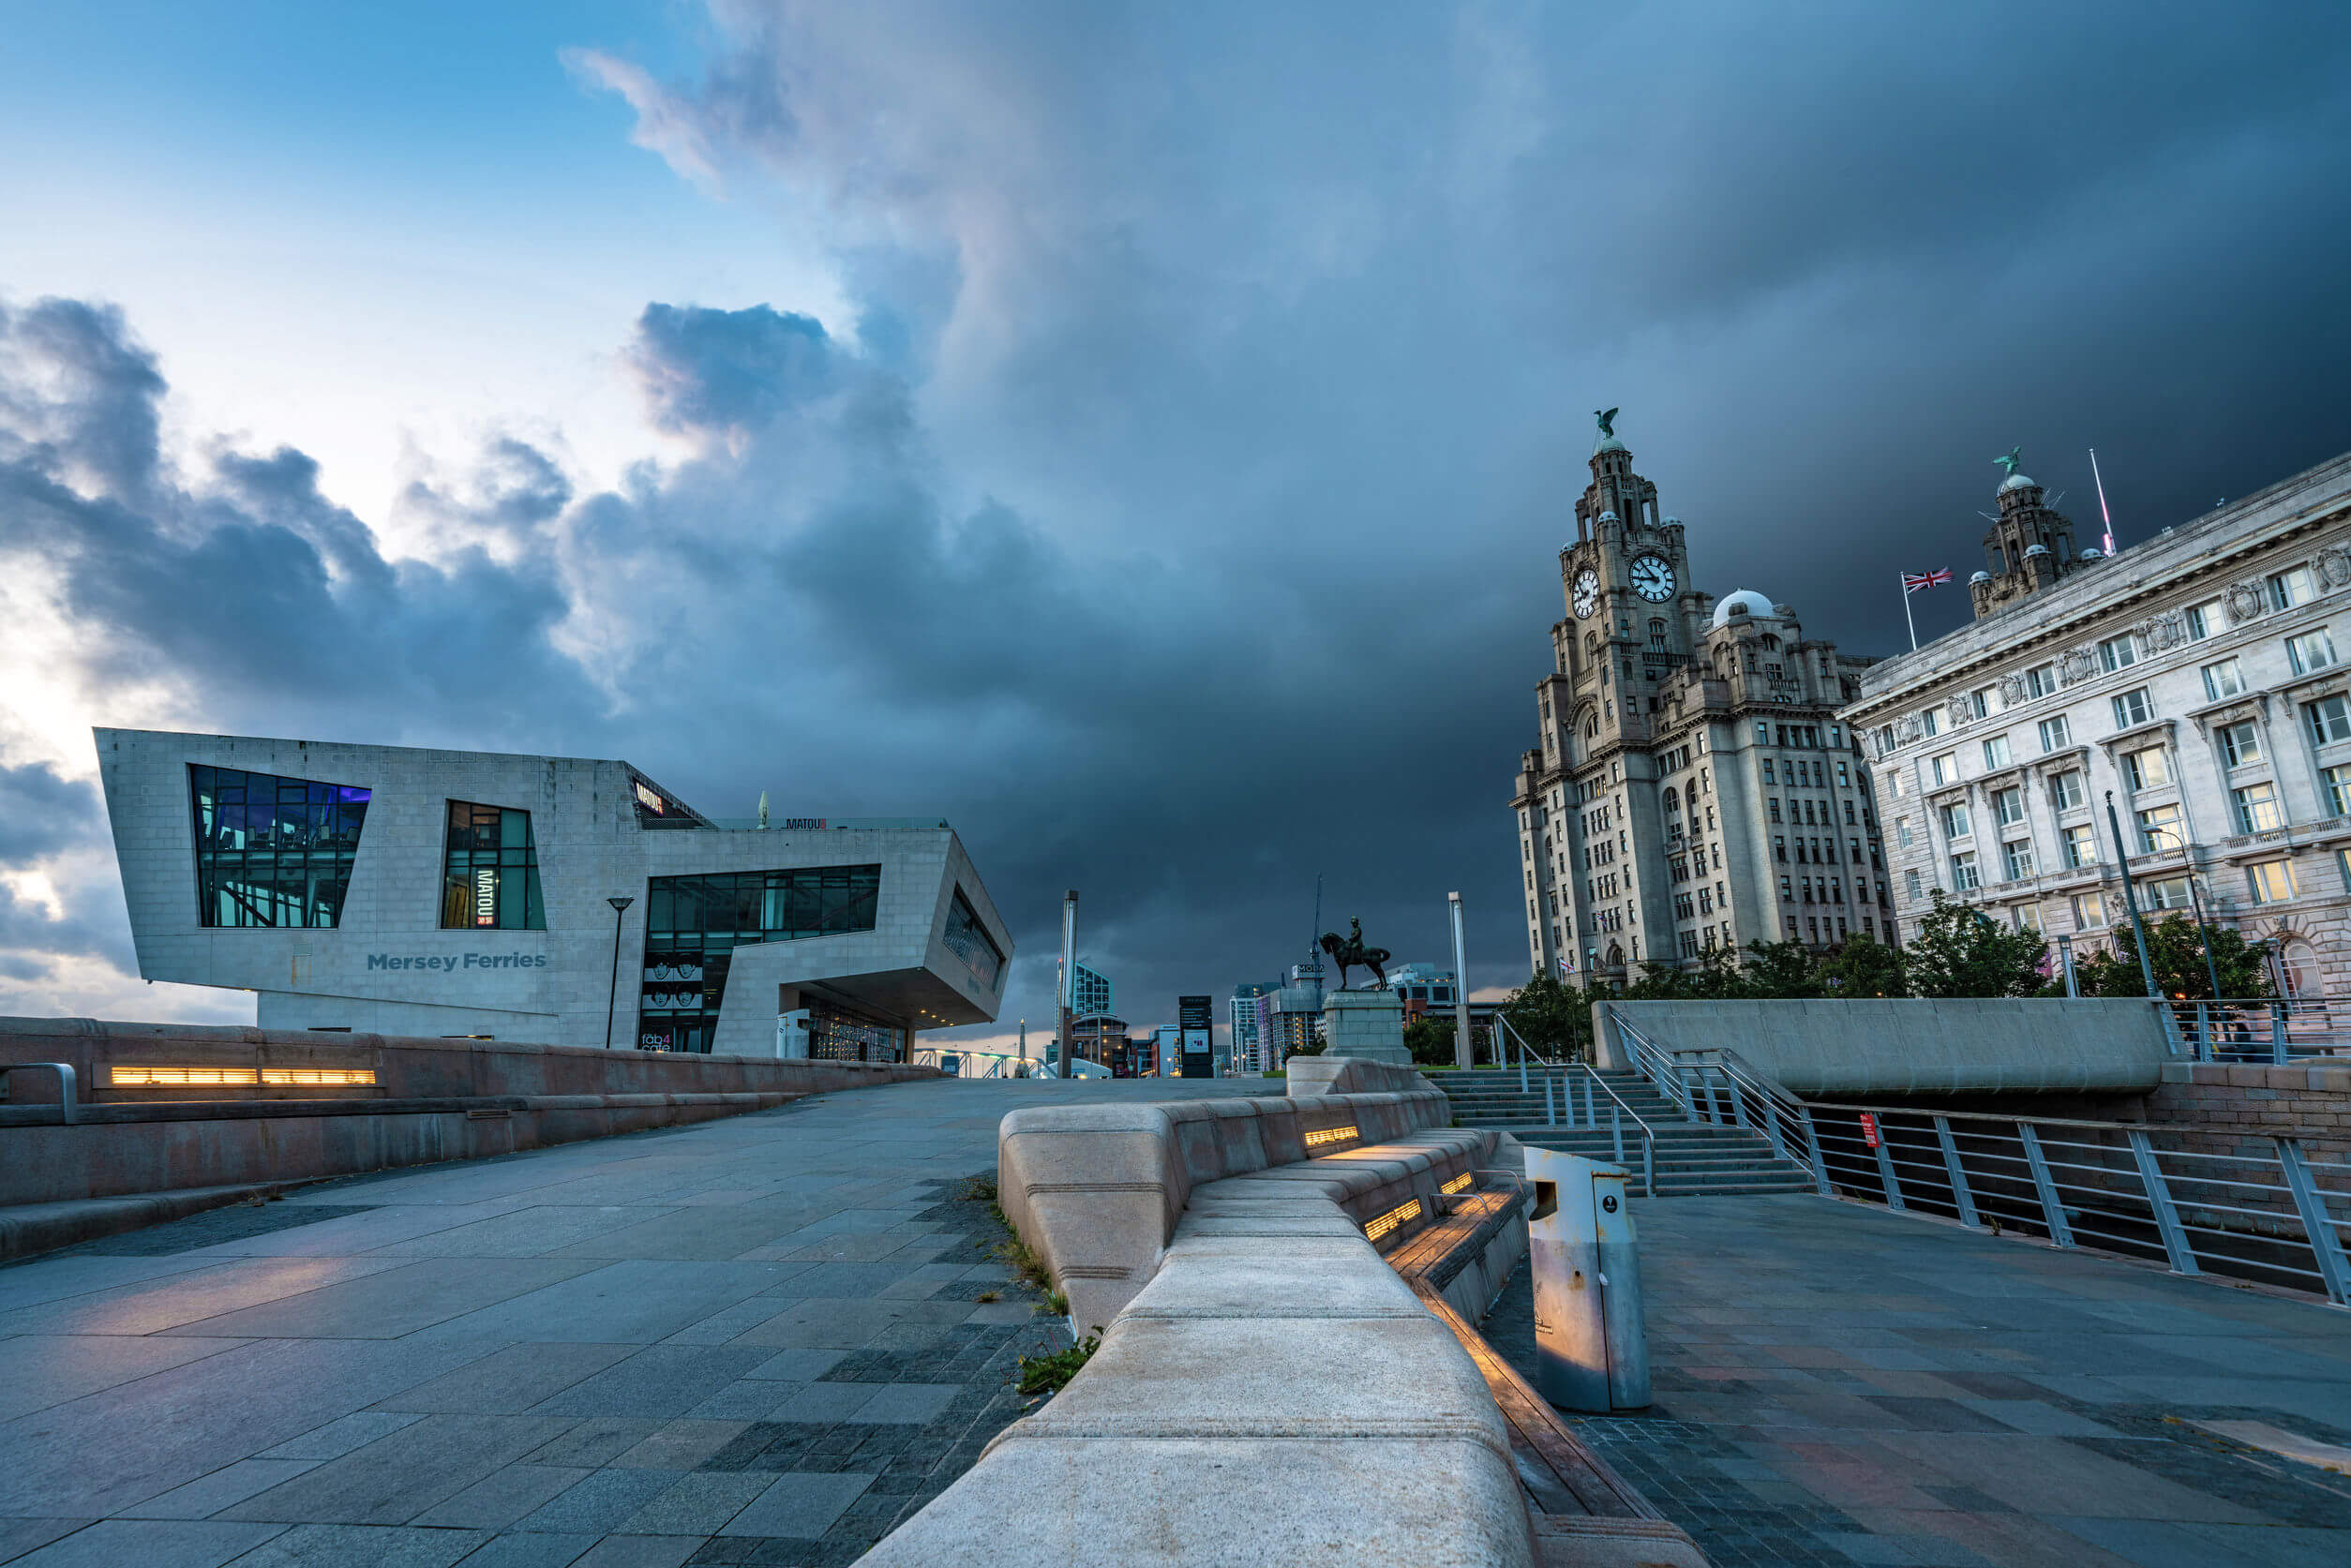 LIVERPOOL, UNITED KINGDOM - AUGUST 11: This is an evening view of the waterfront area and historic city buildings on August 11, 2019 in Liverpool